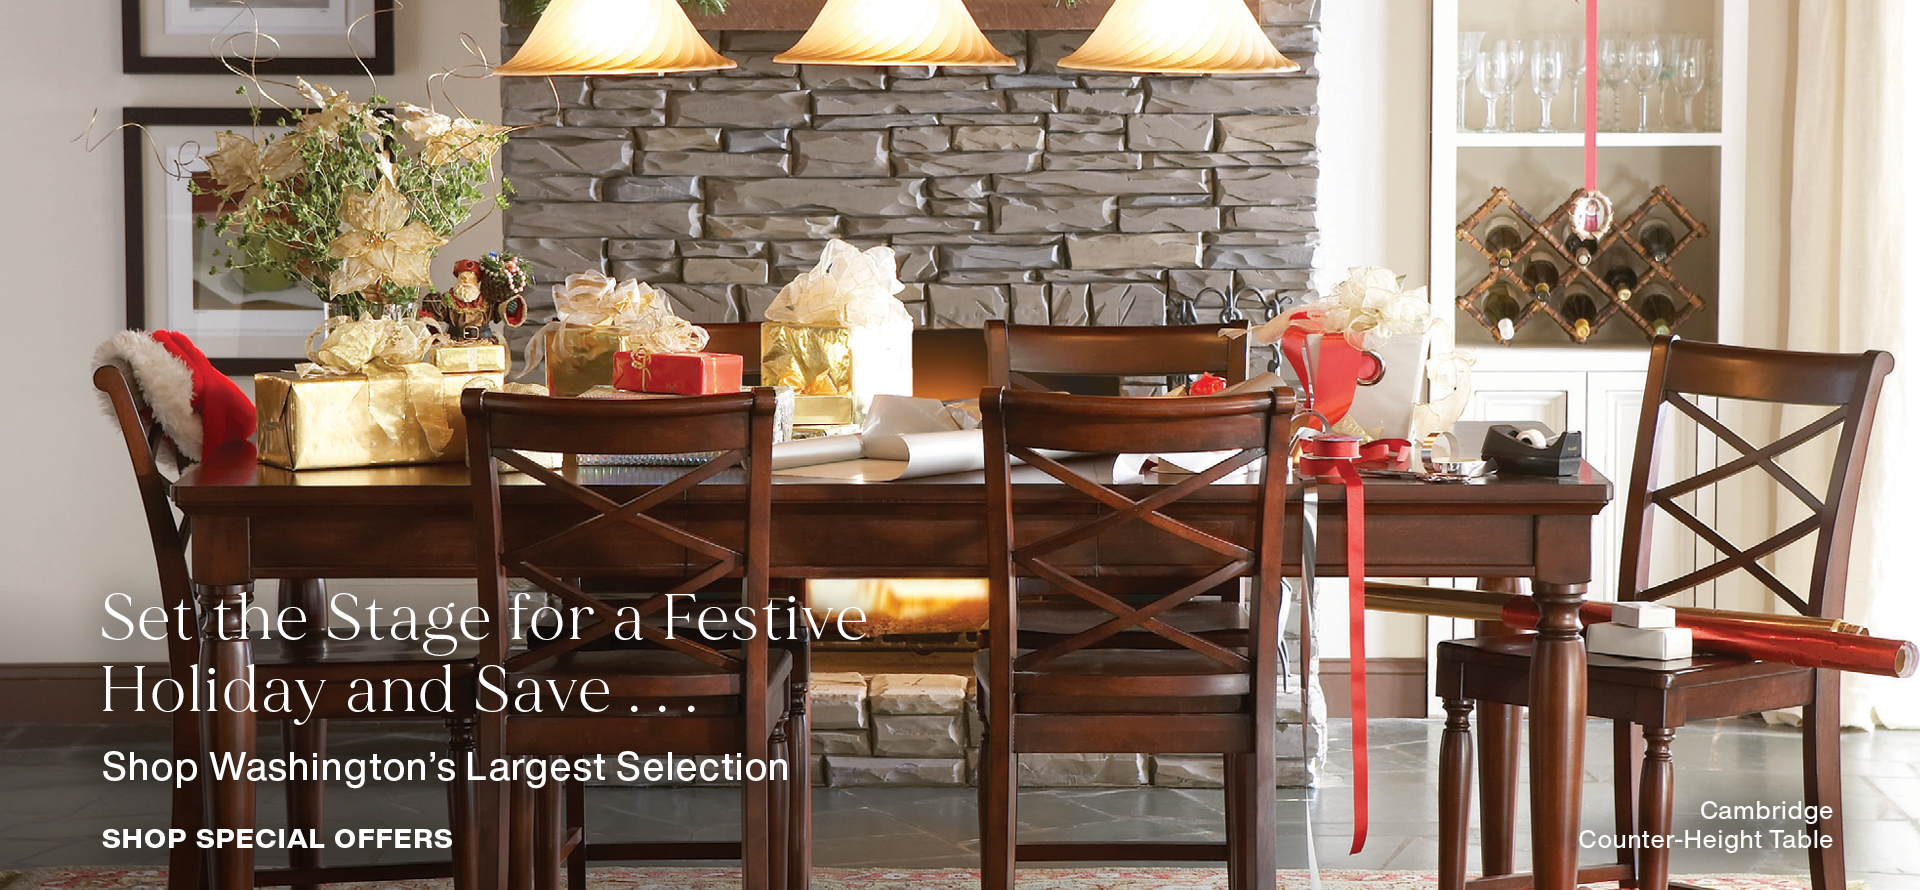 Set the stage for a festive holiday and save